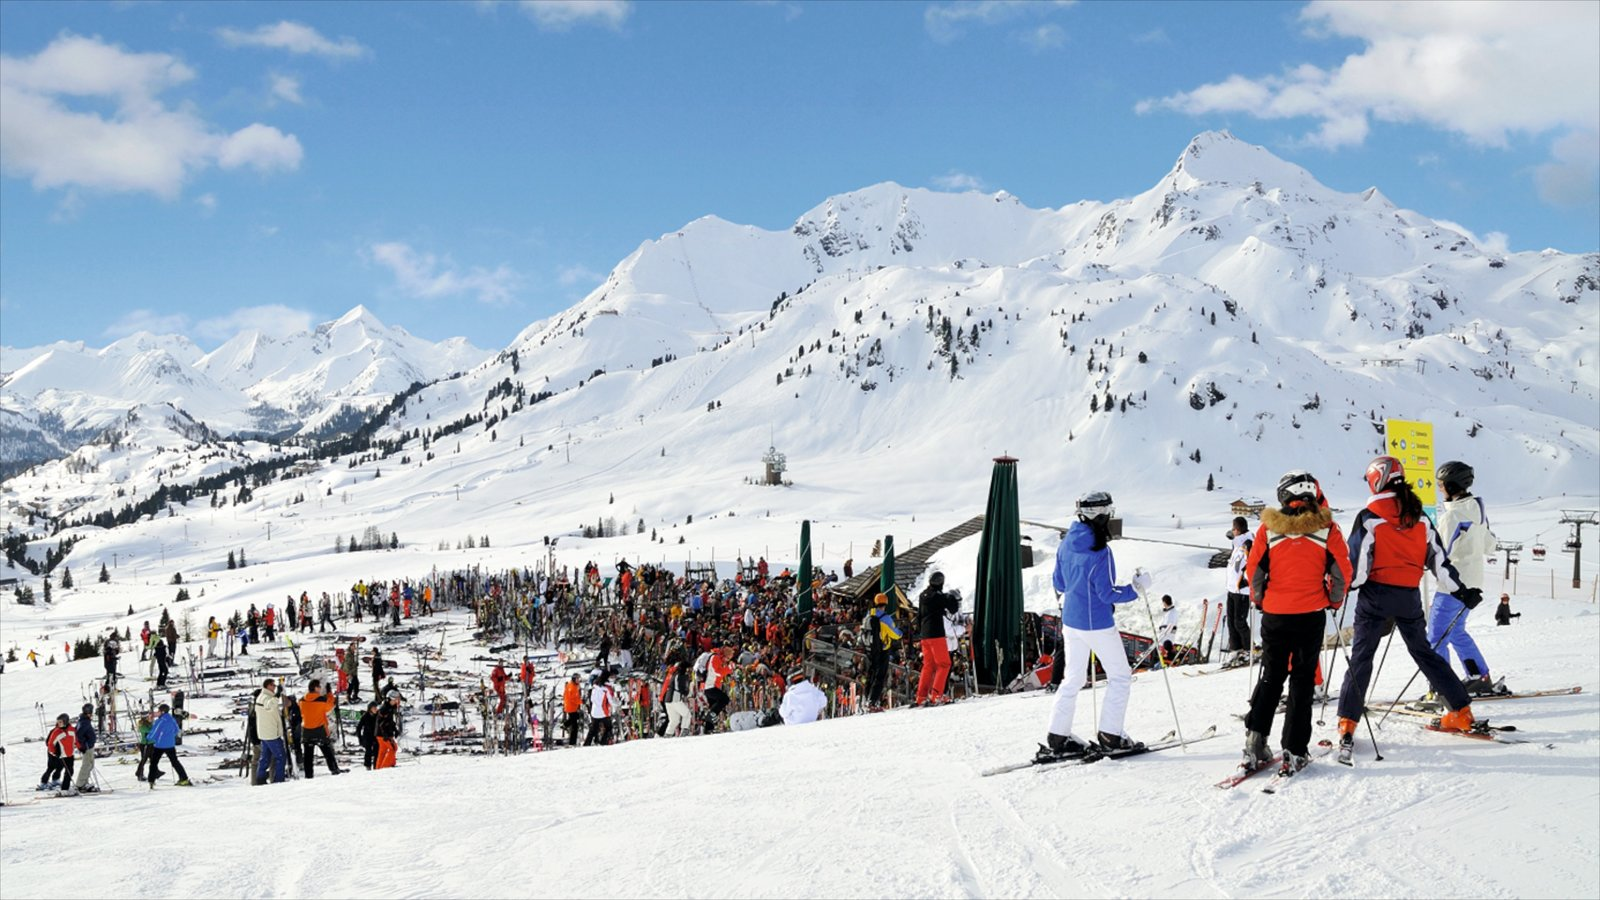 Obertauern showing snow skiing, mountains and snow